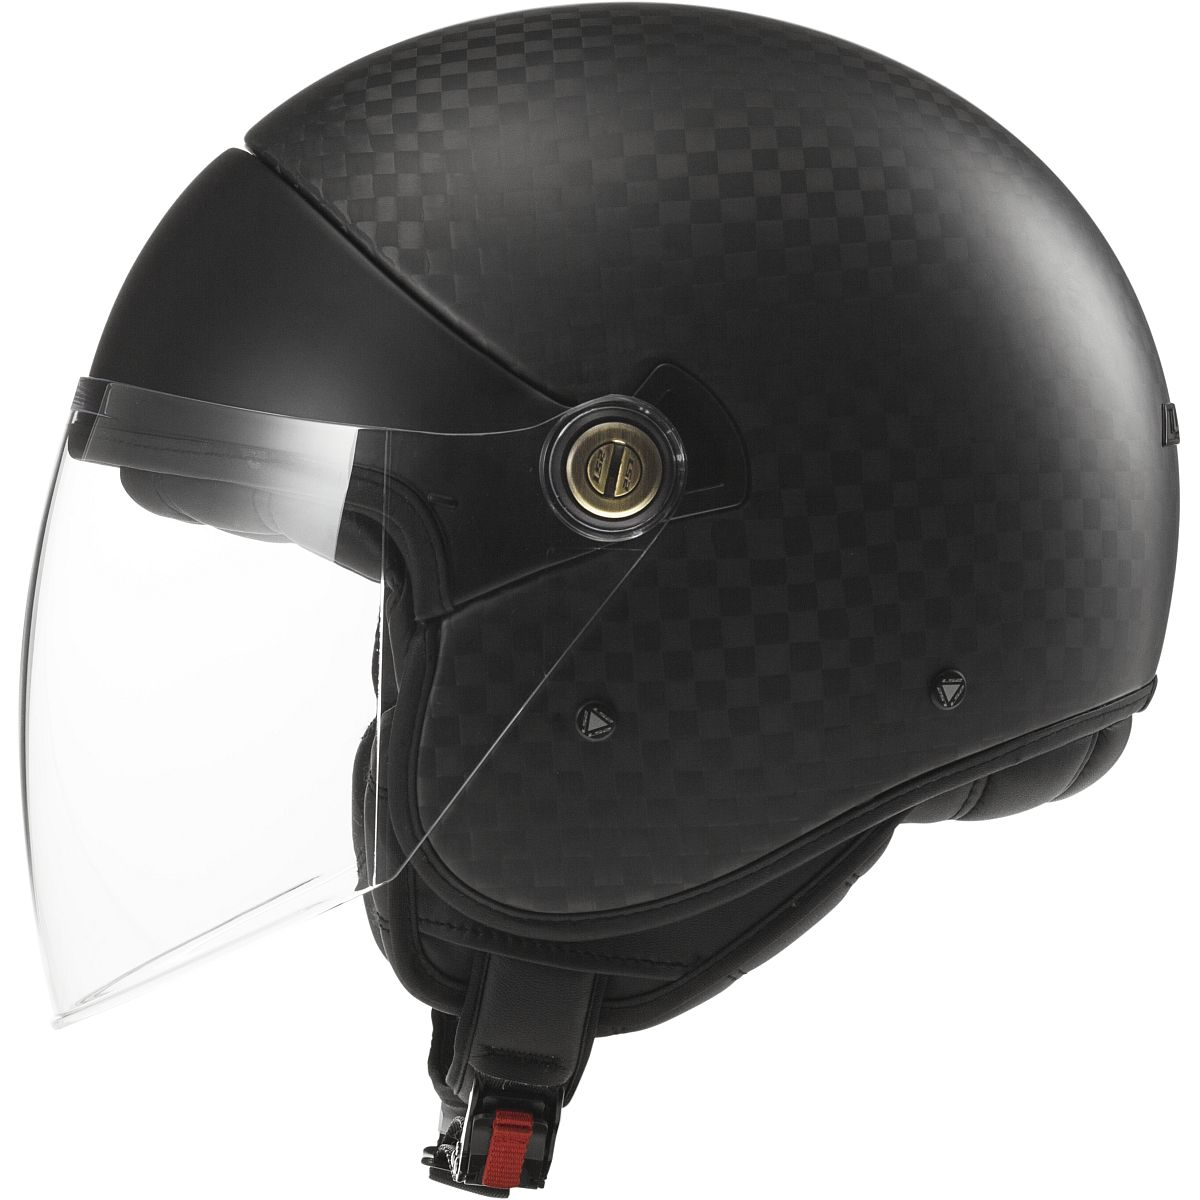 Ls2 Cabrio Carbon Fiber Open Face Motorcycle Helmet With